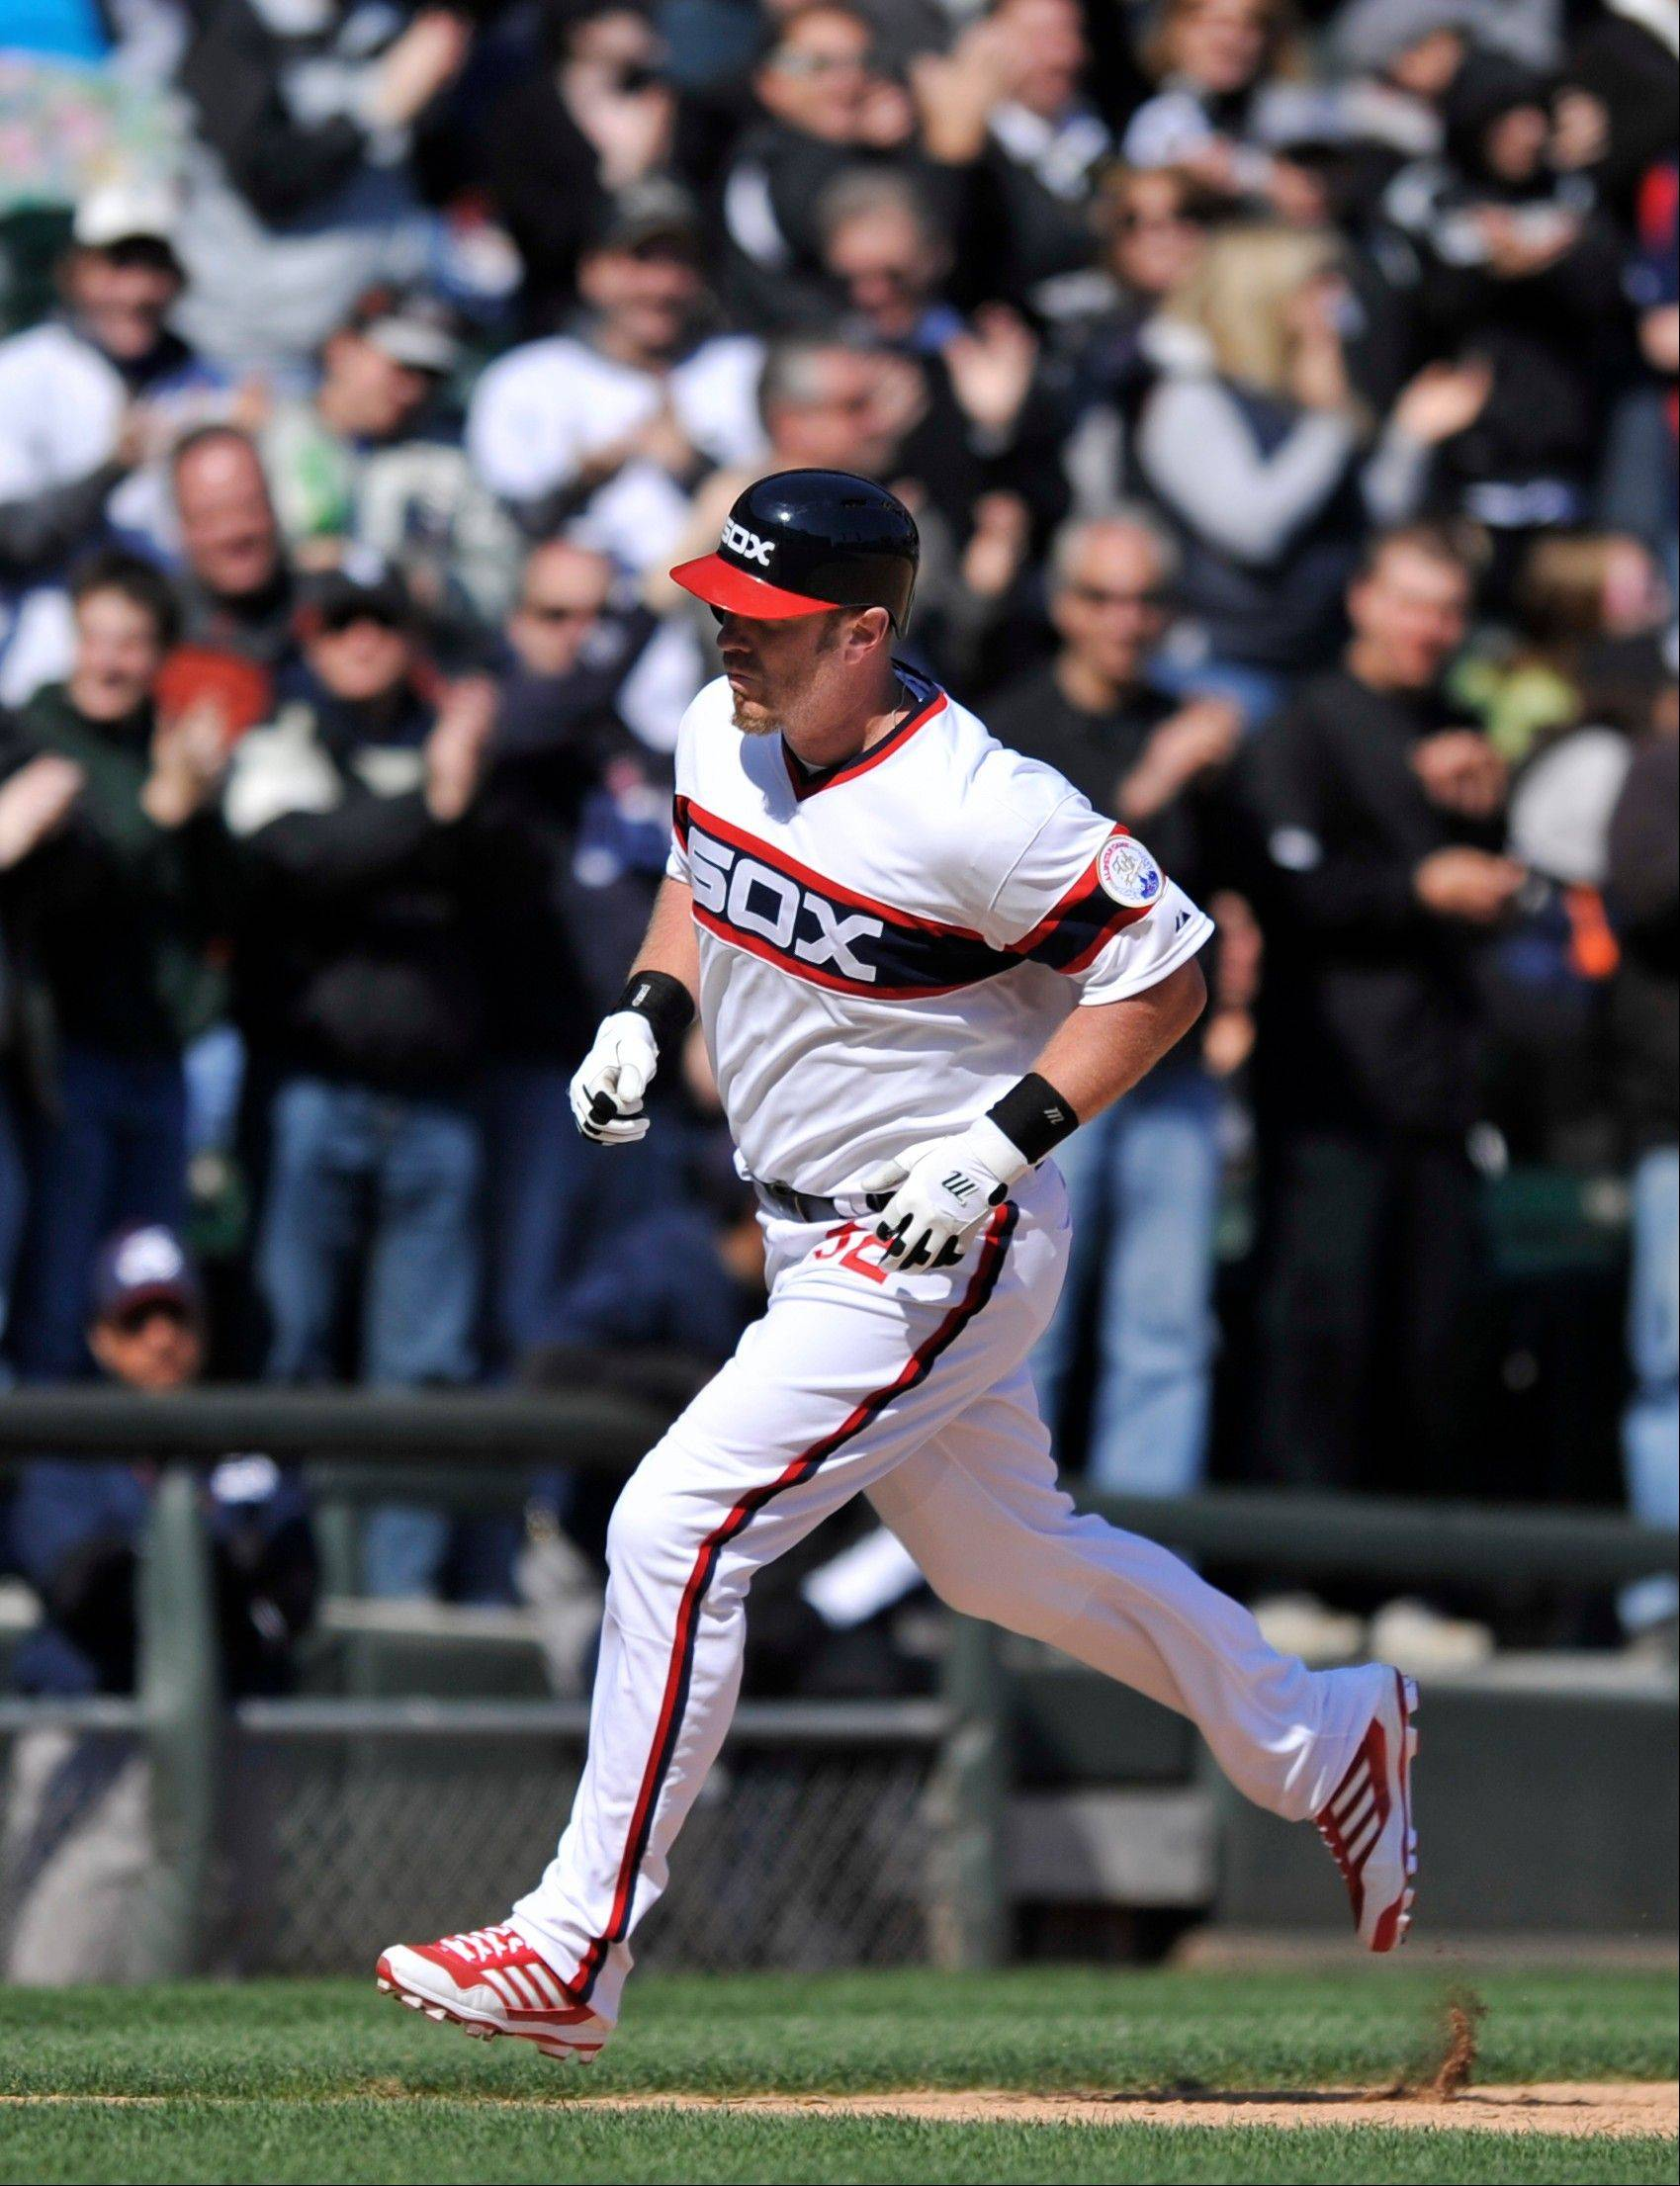 White Sox DH/first baseman Adam Dunn ended an extended slump Sunday with a solo home run against the Minnesota Twins during the seventh inning.